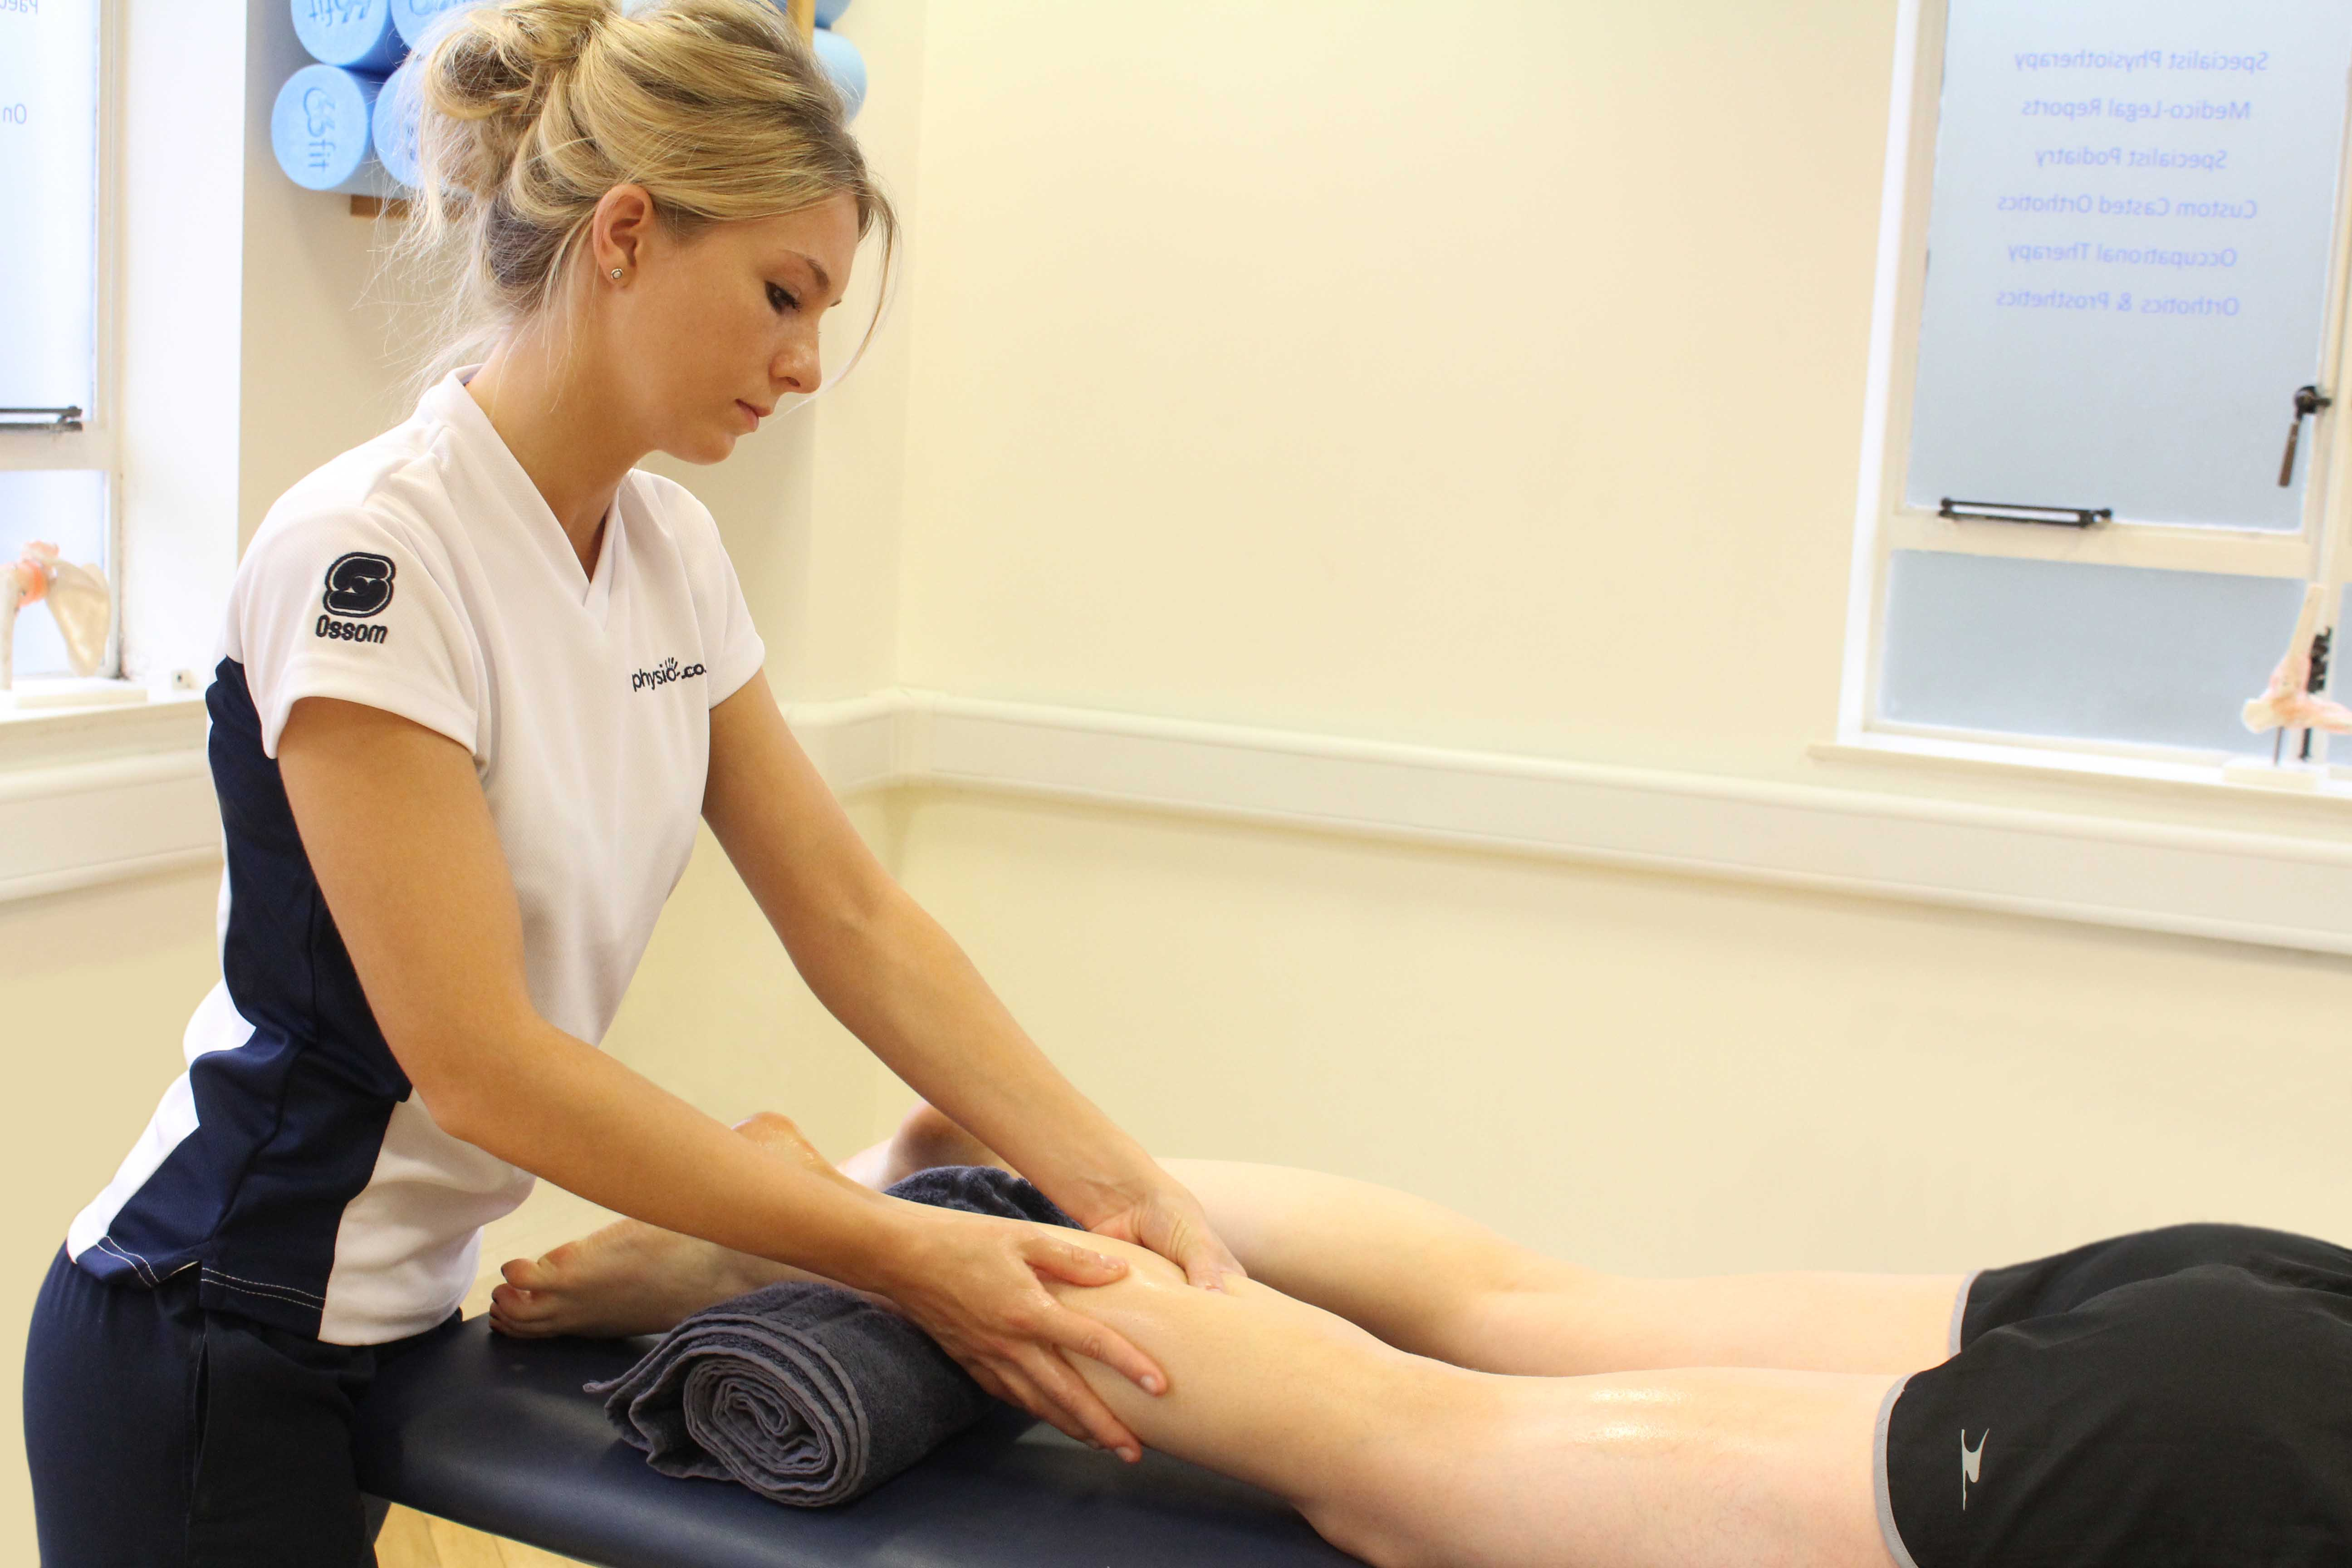 Deep tissue massage of the gastrocnemius muscle by specialist MSK therapist